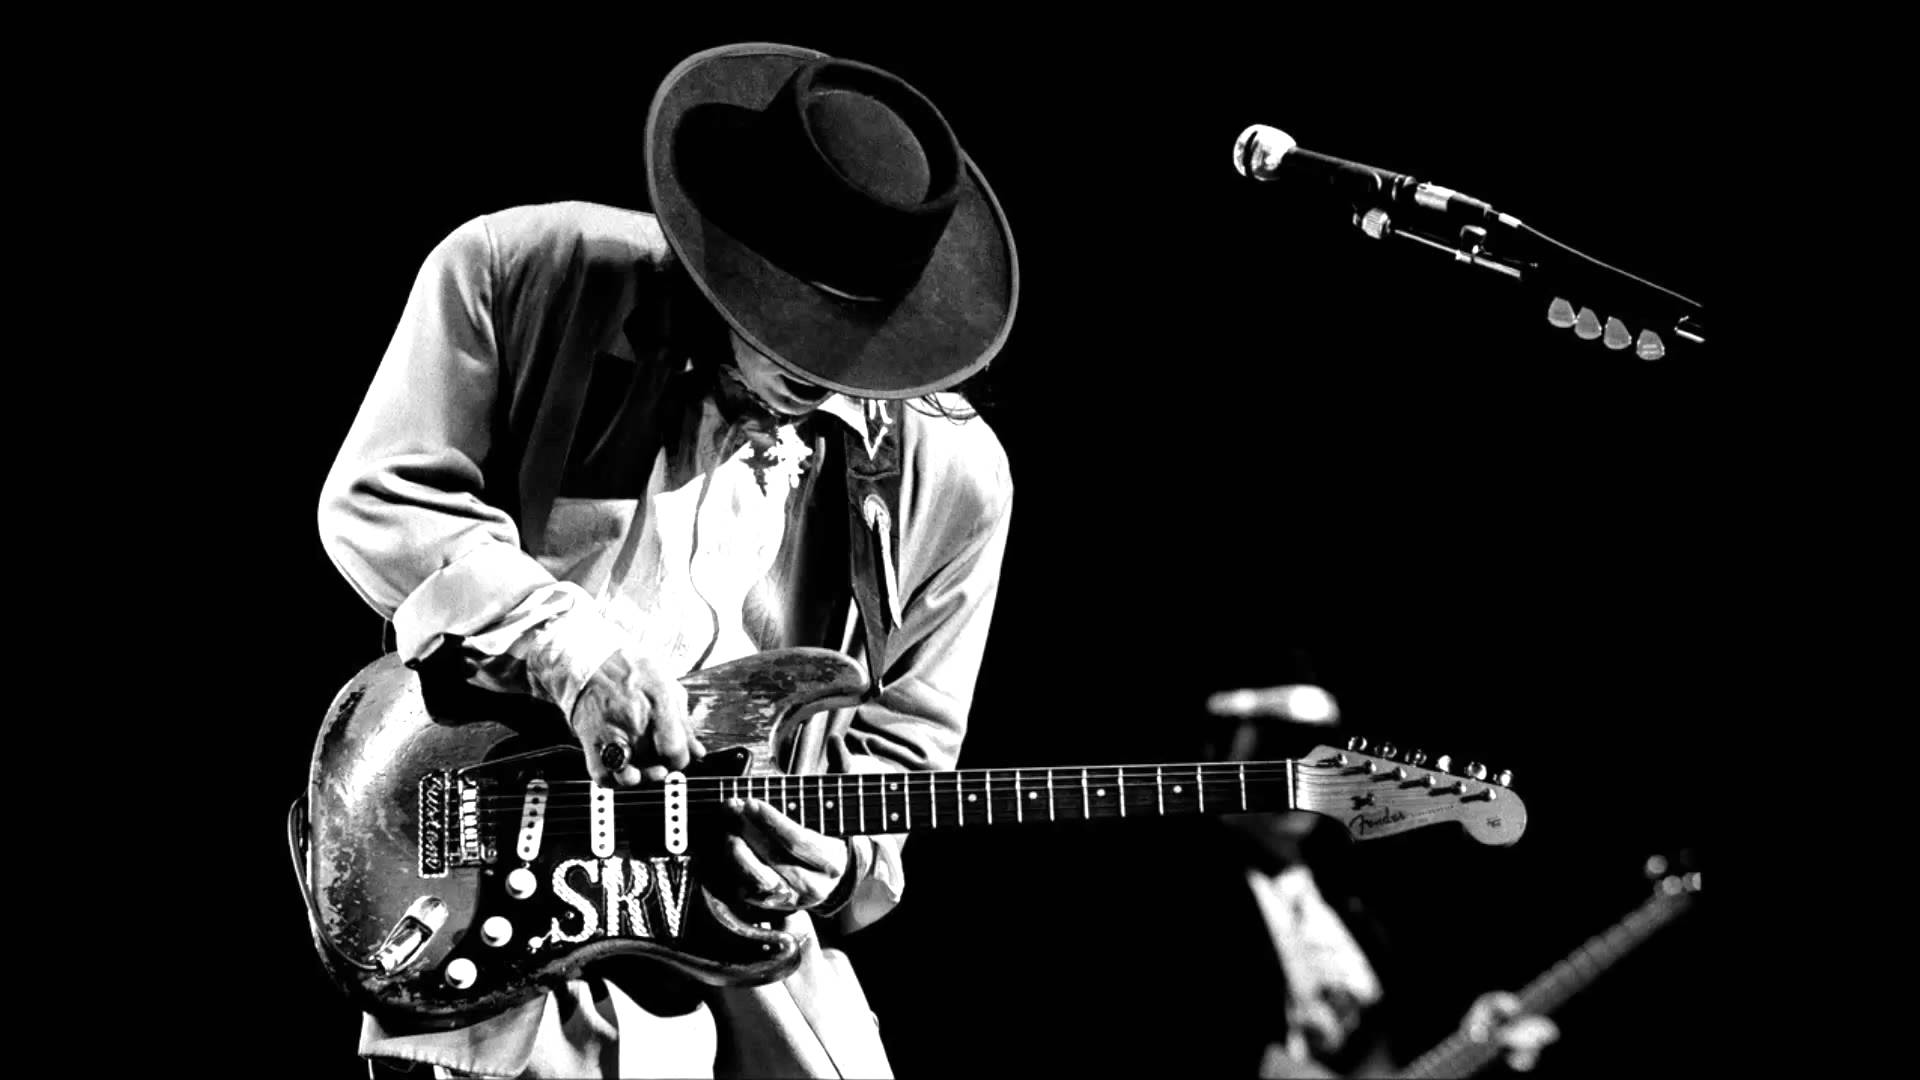 Recordando a Stevie Ray Vaughan